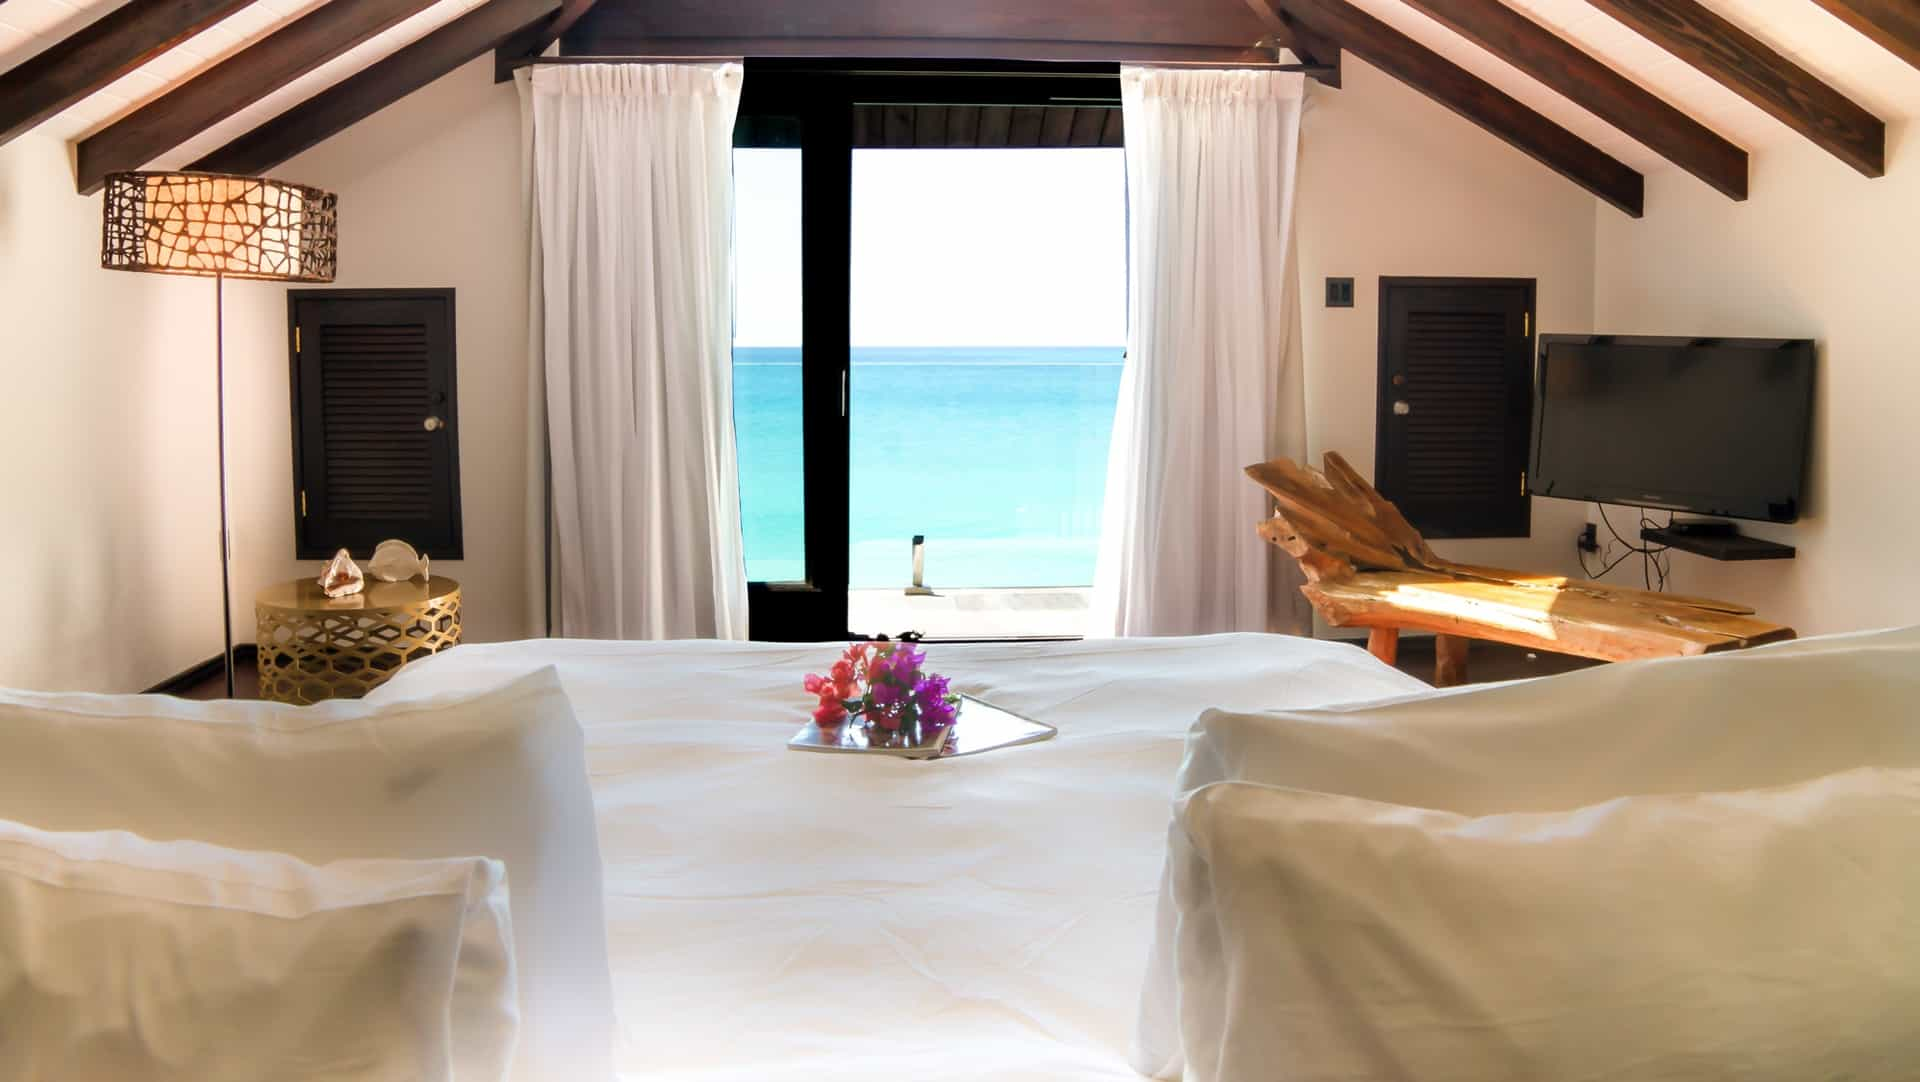 bedroom with ocean view and bed